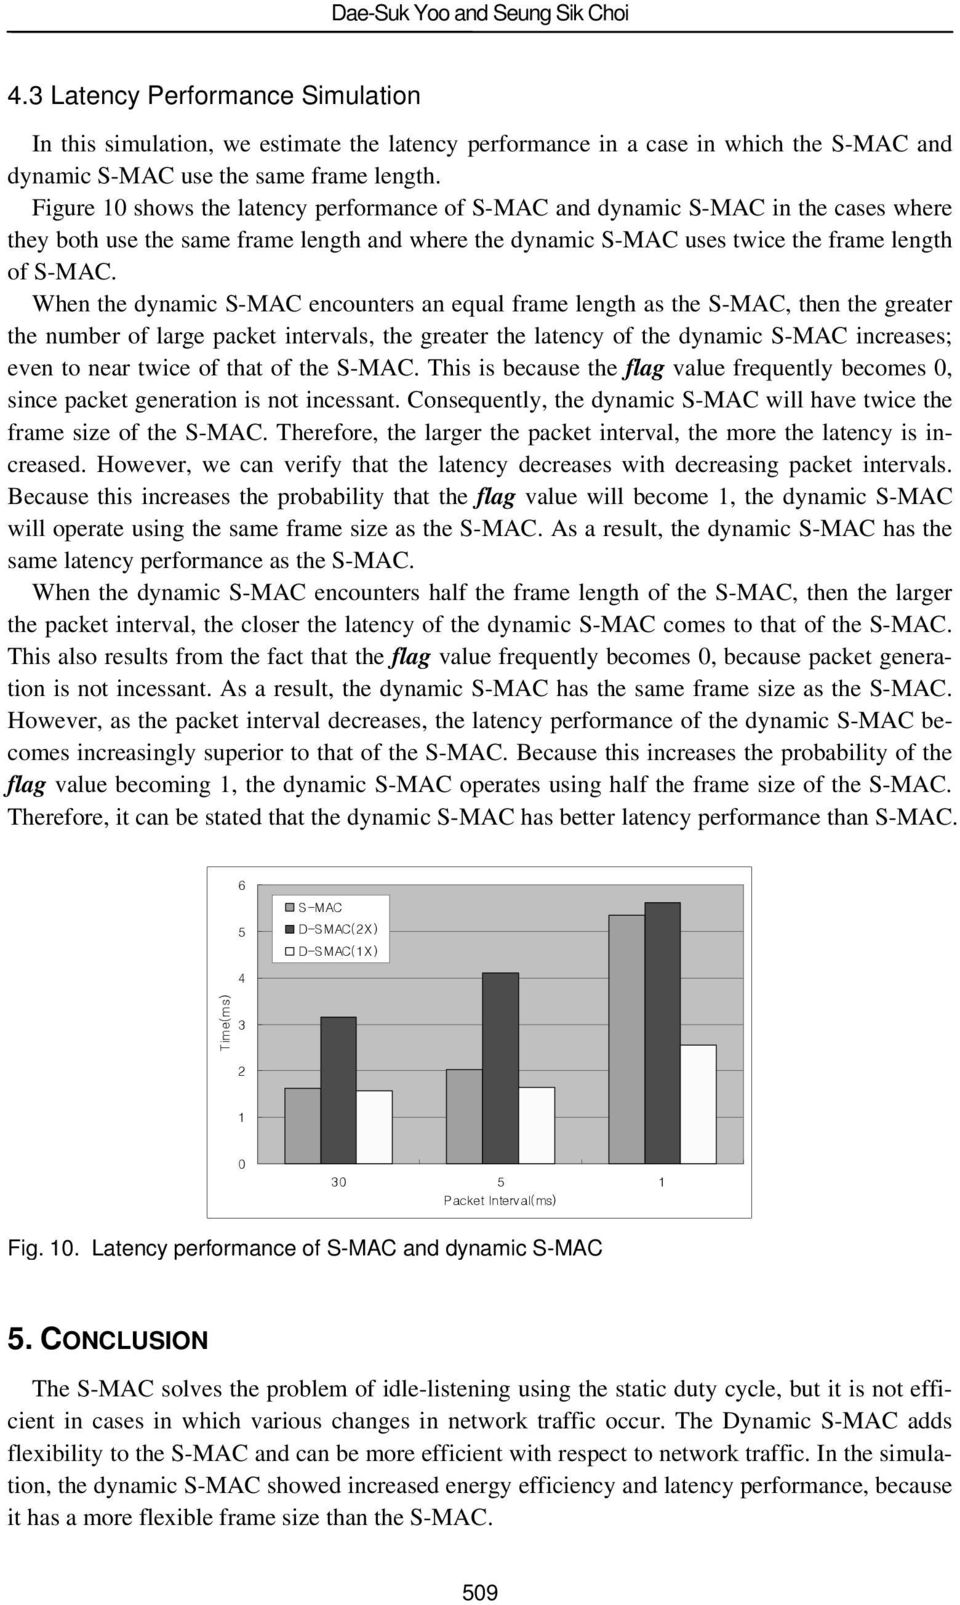 When the dynamic S-MAC encounters an equal frame length as the S-MAC, then the greater the number of large packet intervals, the greater the latency of the dynamic S-MAC increases; even to near twice